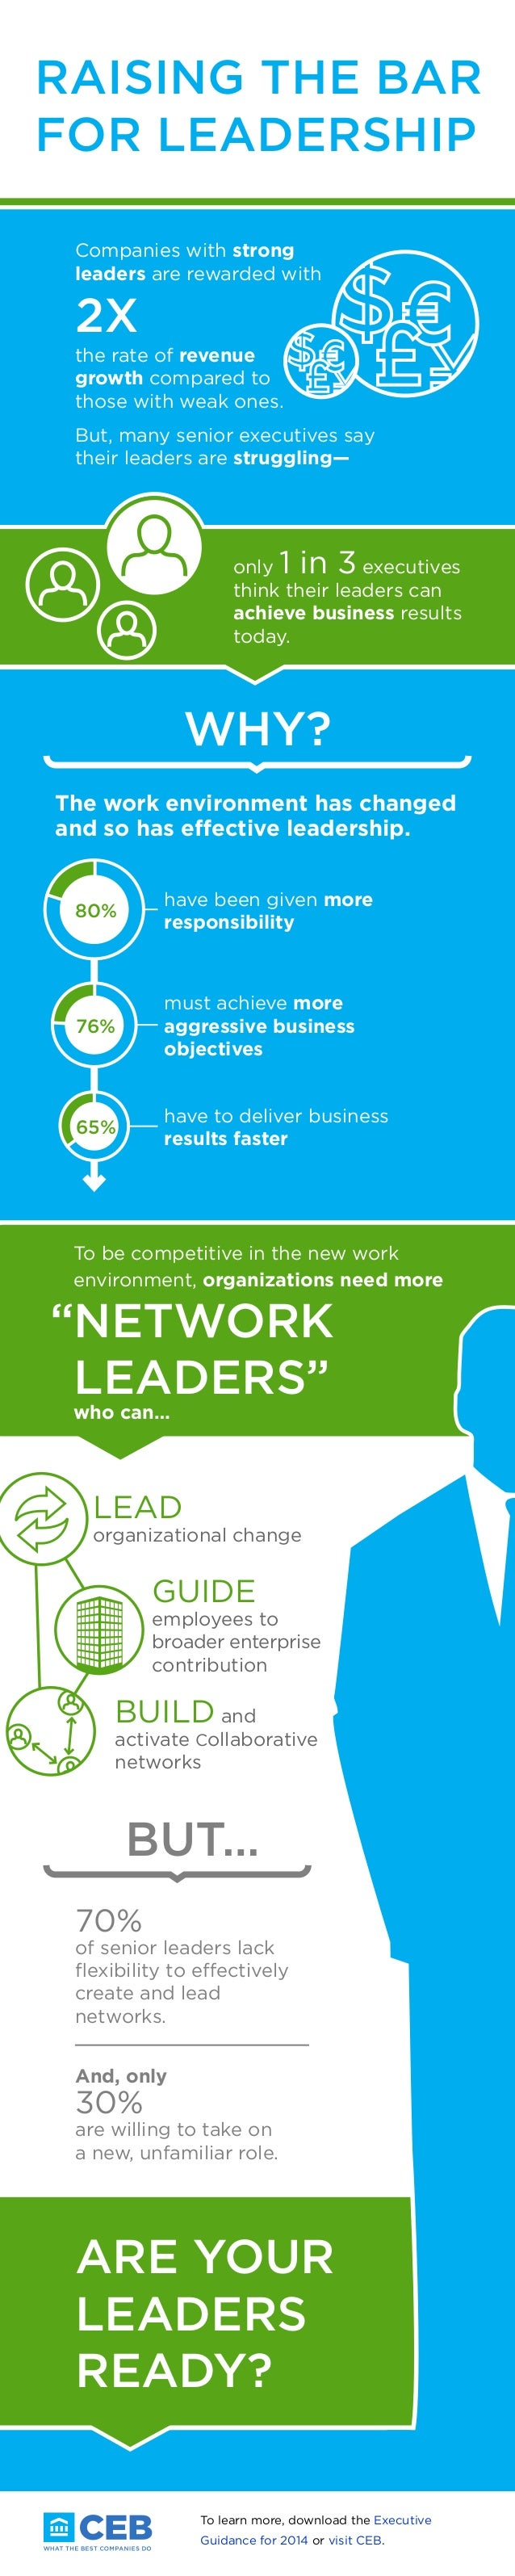 RAISING THE BAR FOR LEADERSHIP Companies with strong leaders are rewarded with  2X  the rate of revenue growth compared to...